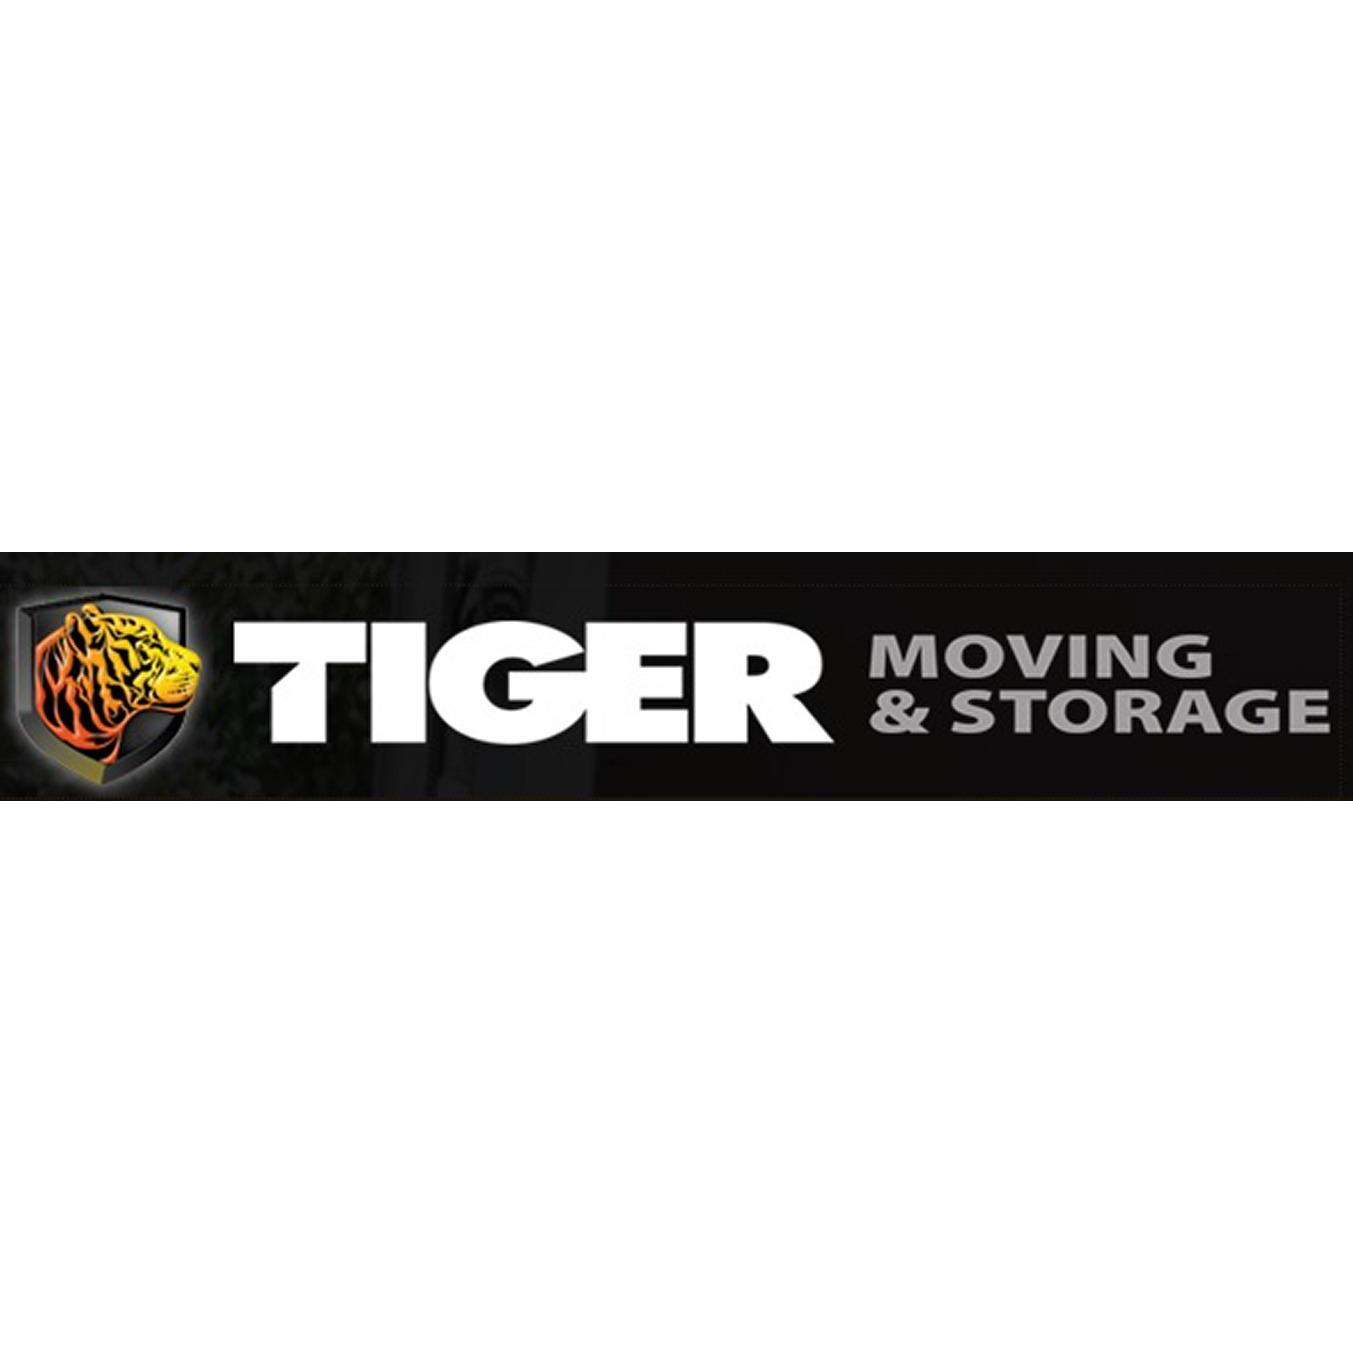 Tiger Moving & Storage